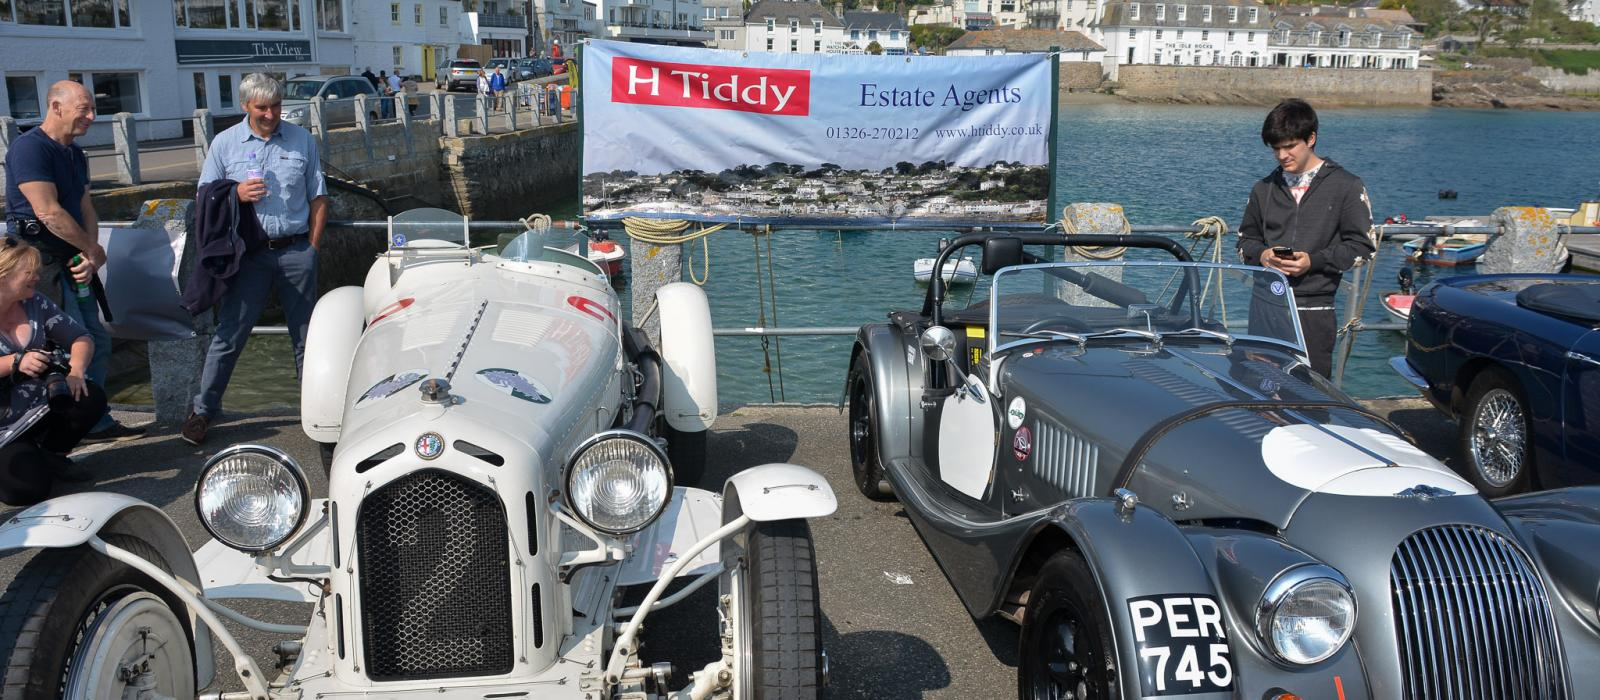 Concours on the quay